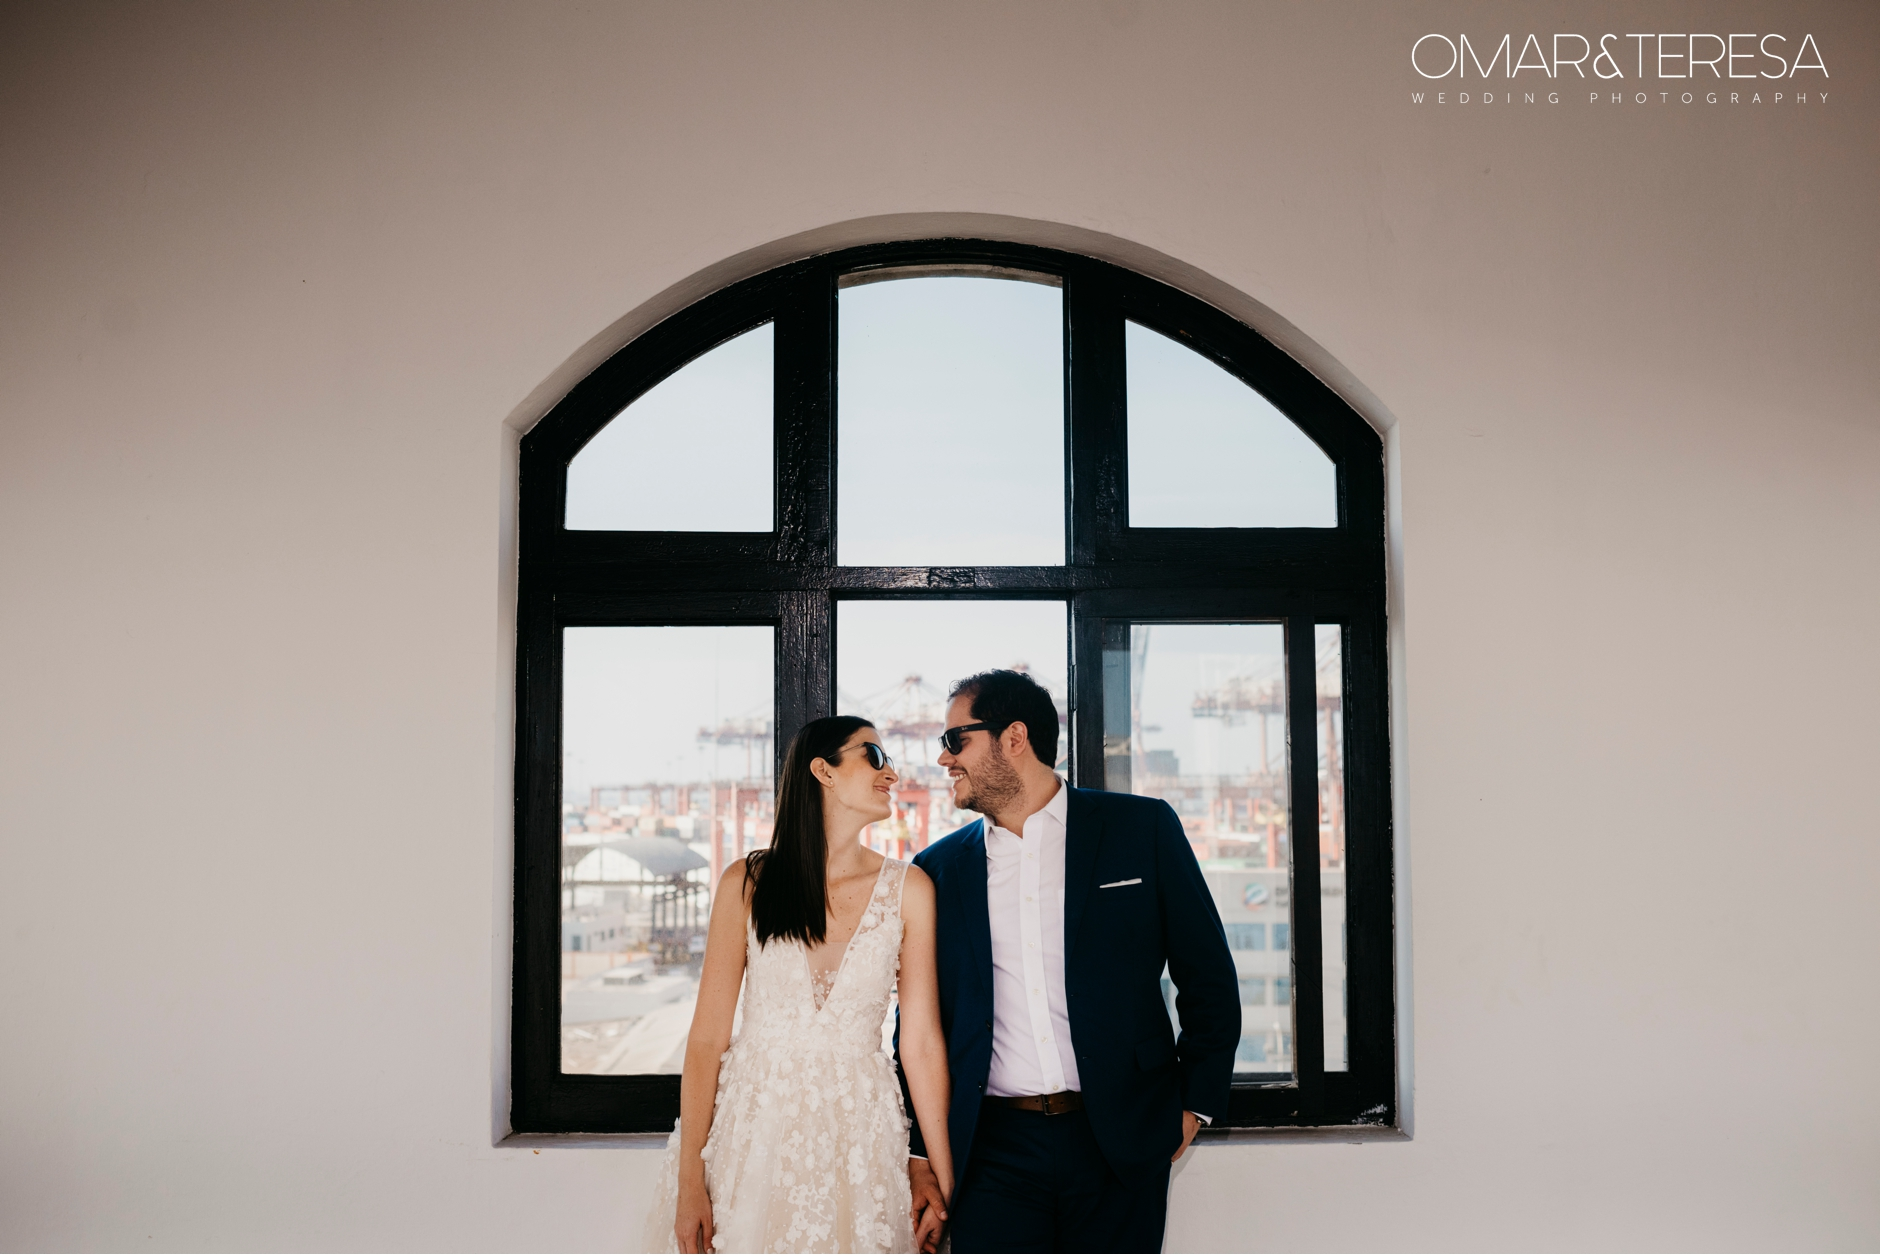 omarandteresa-Adriana y Omar - After Wedding 57.jpg